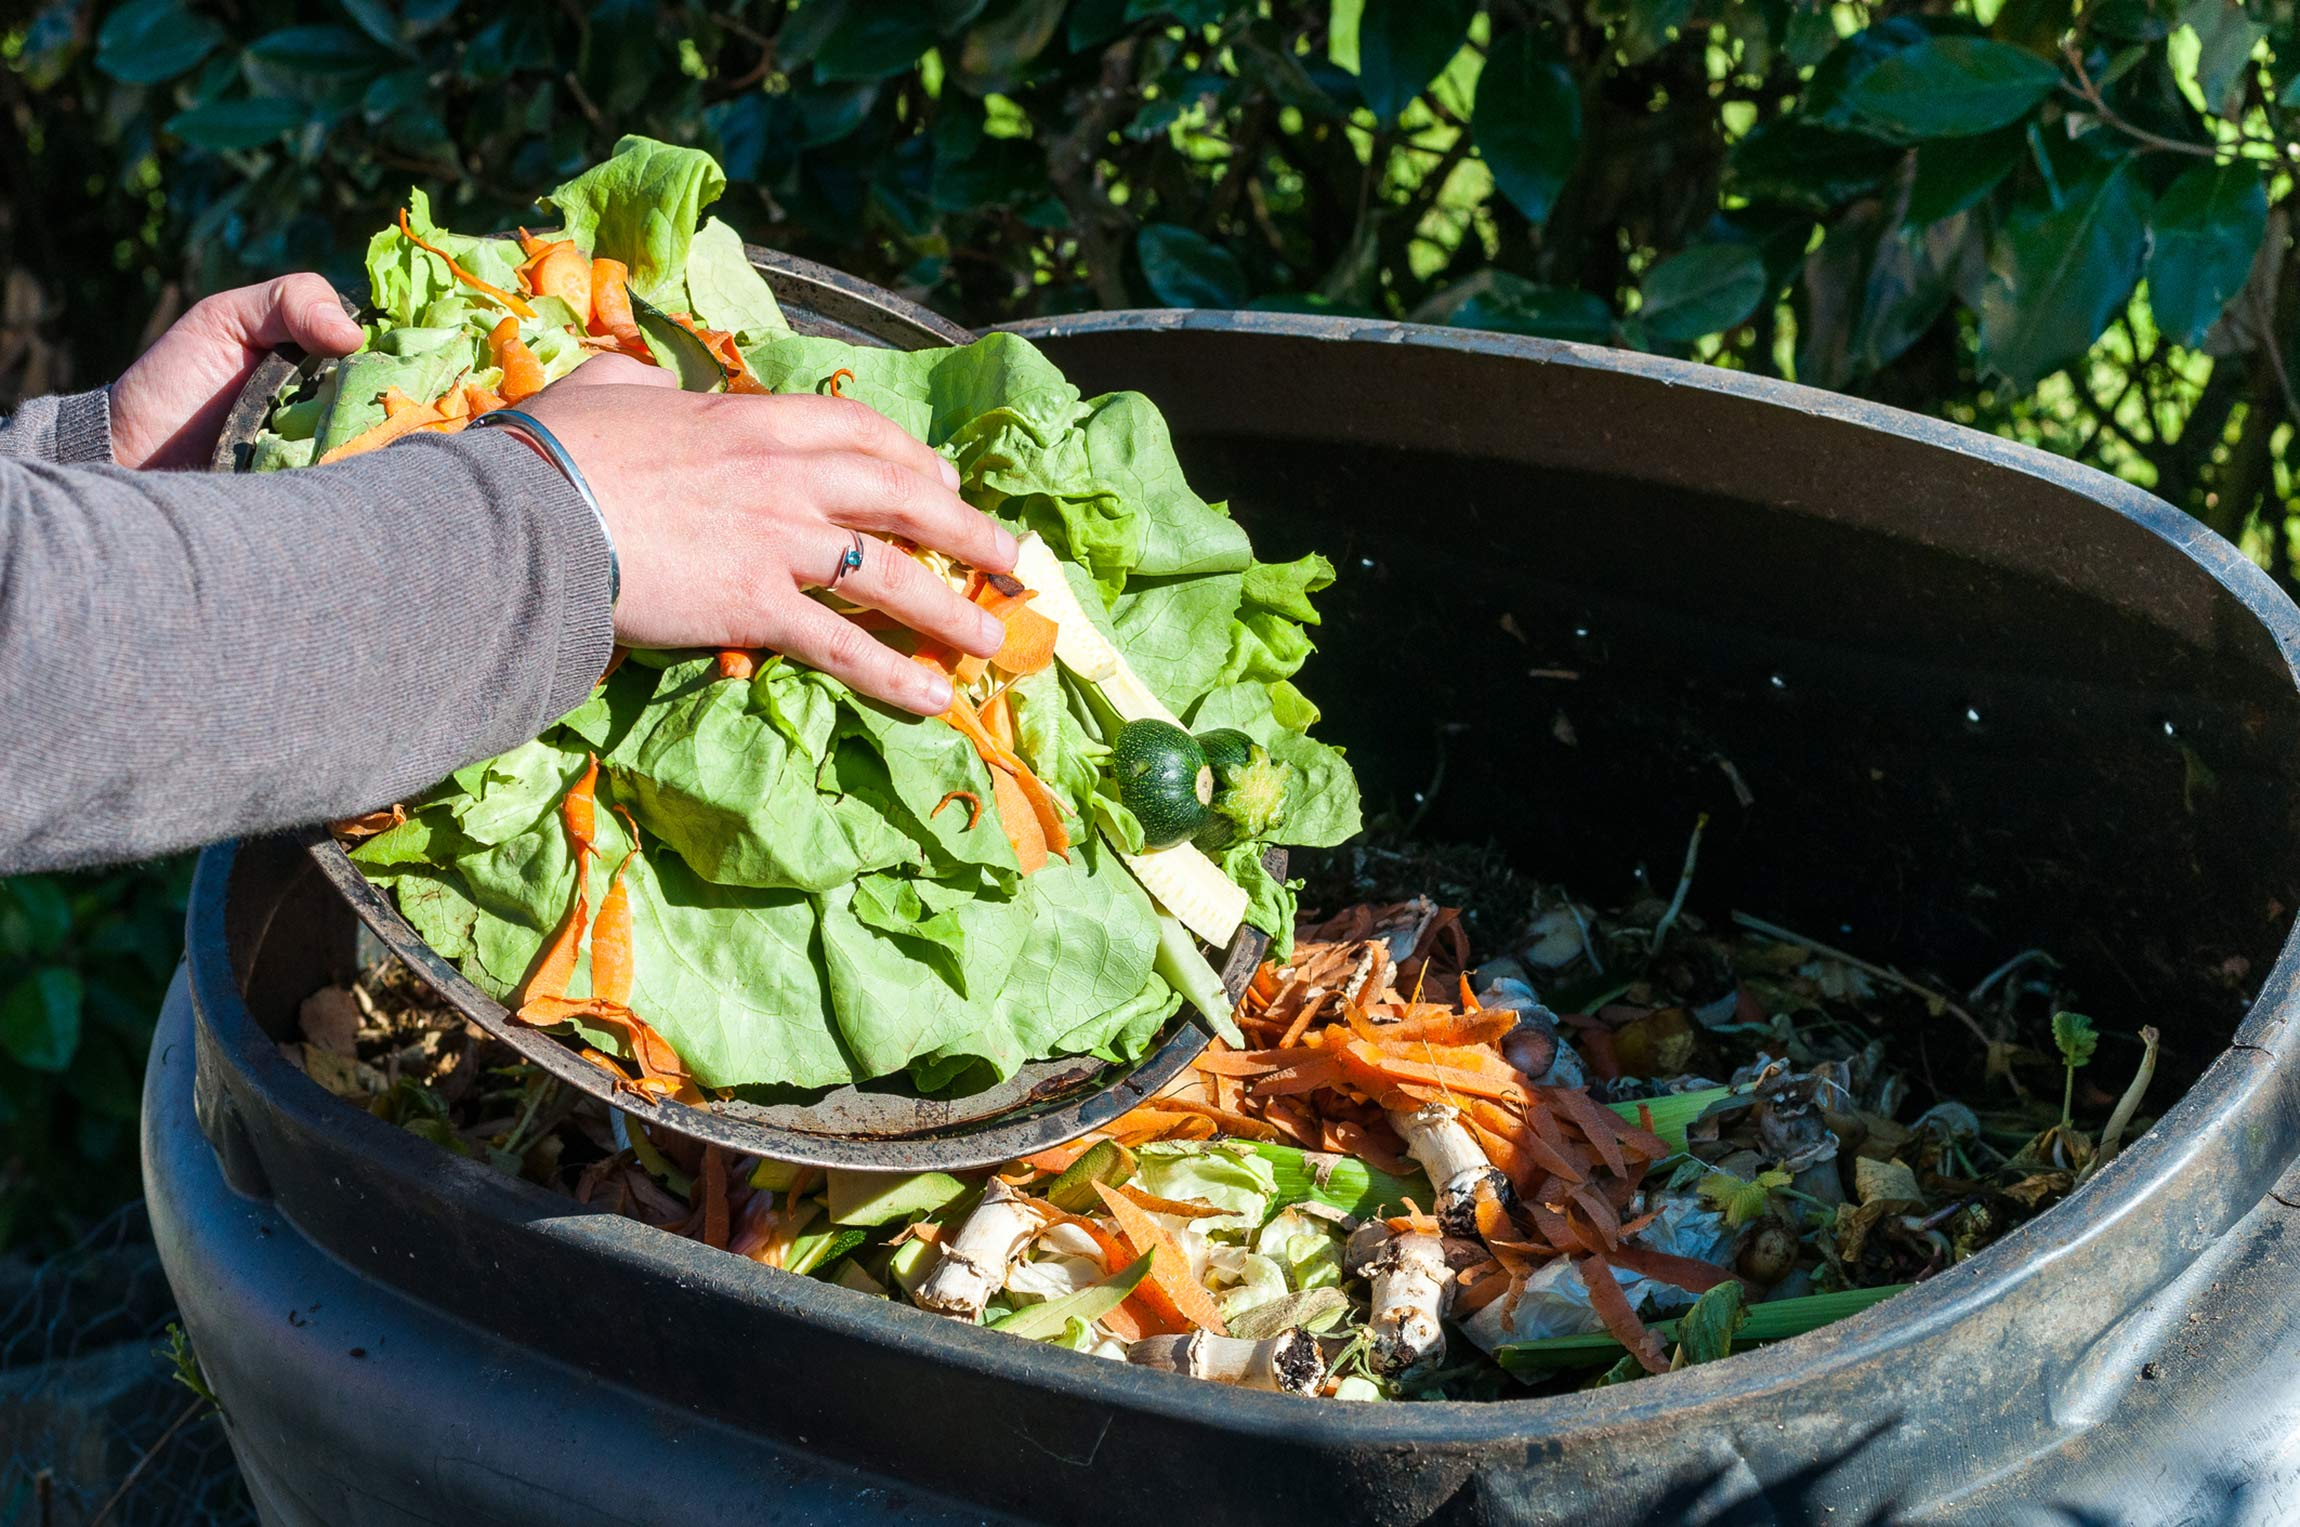 Food waste: 17 ways to help reduce food waste